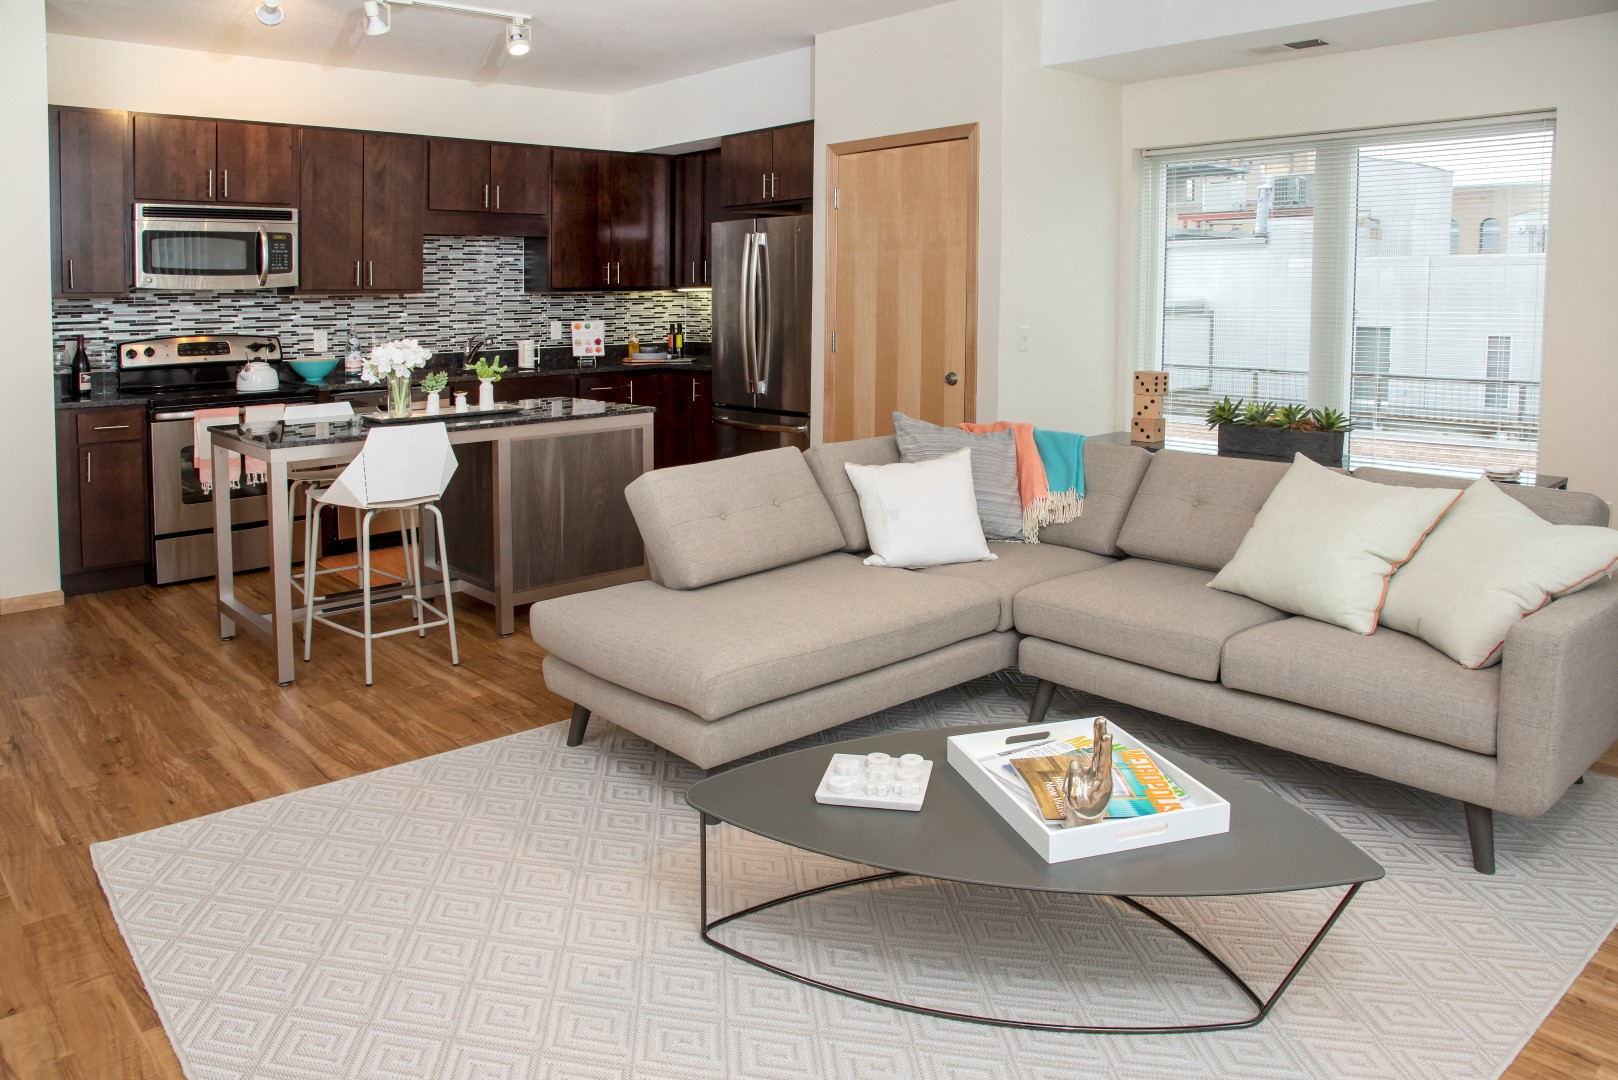 Third North | Apartments in Minneapolis MN | & Third North | Apartments in Minneapolis MN |